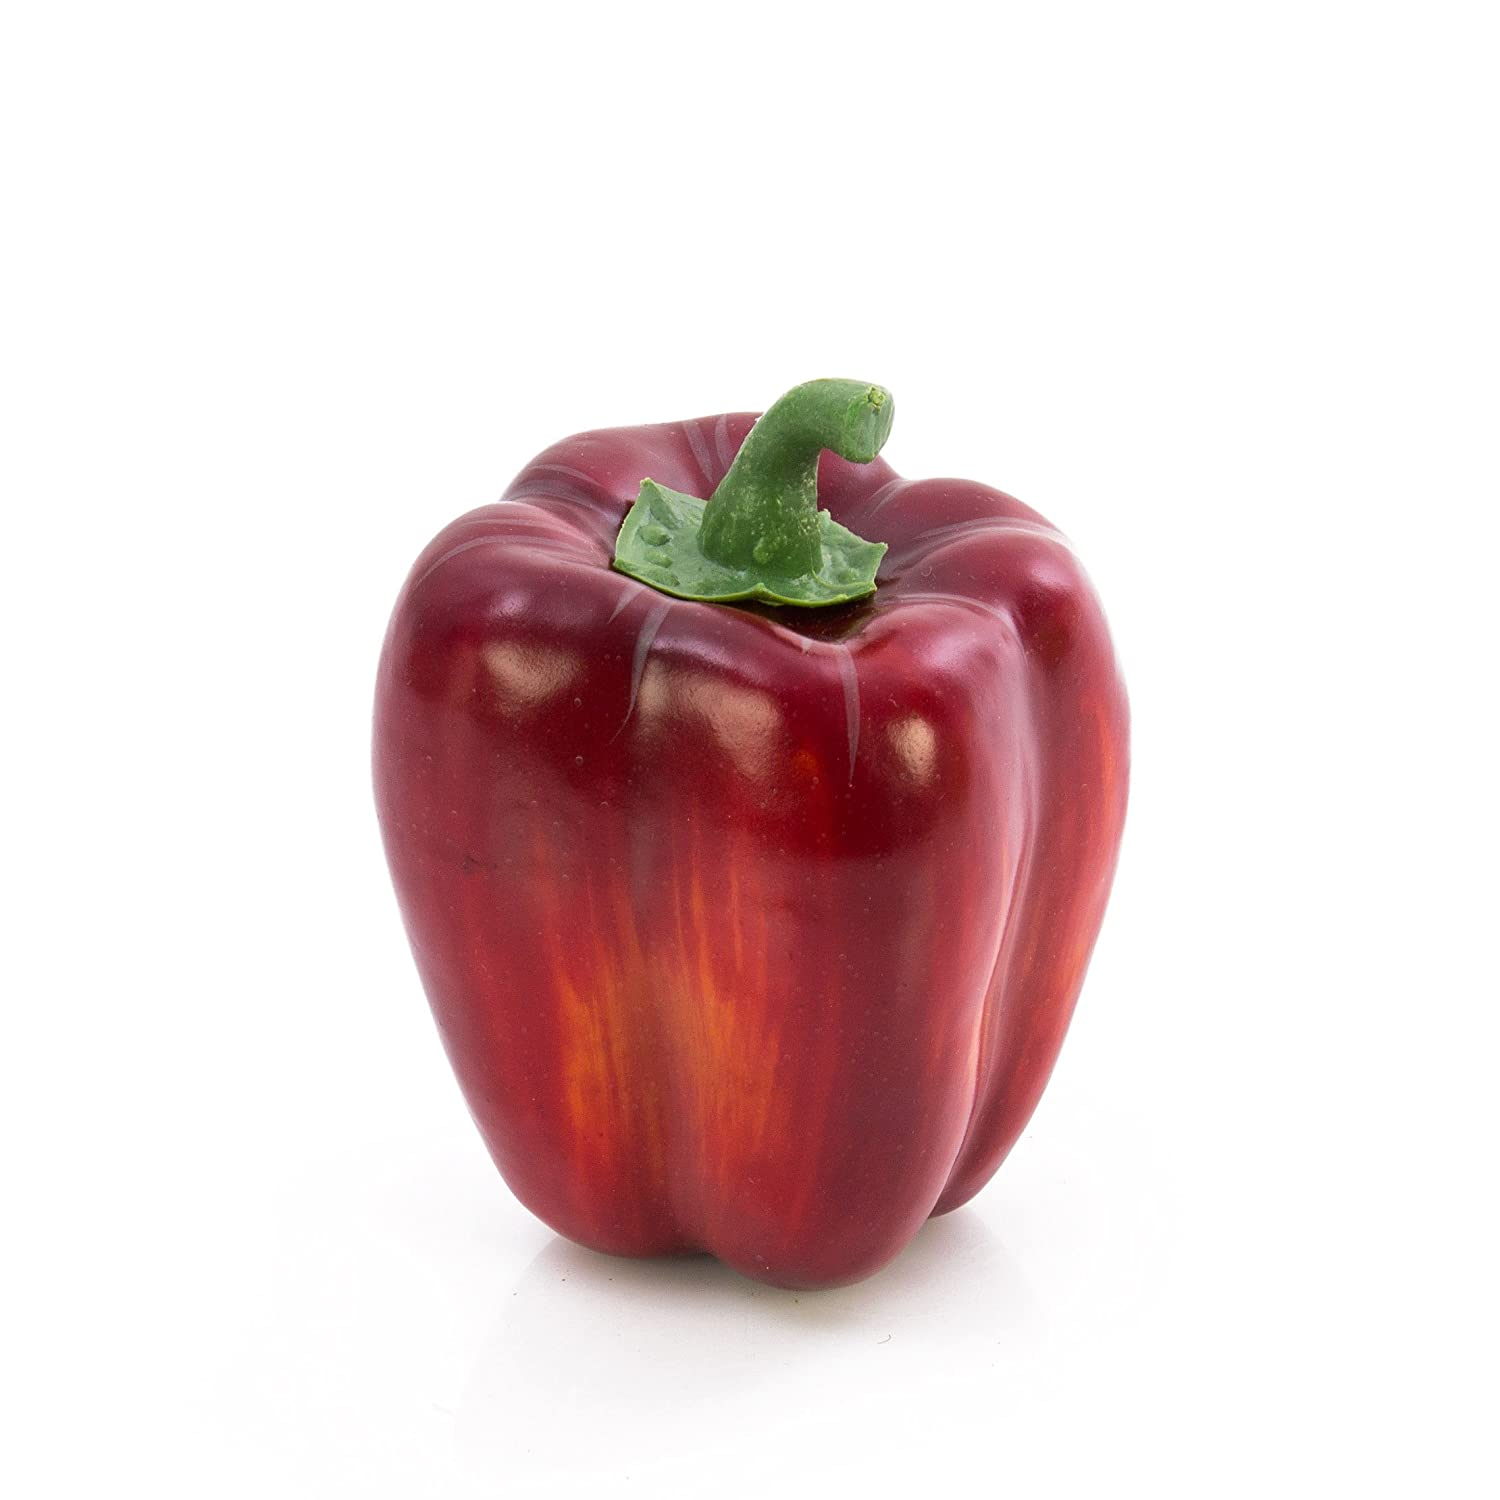 Peperone rosso artificiale, 11 cm, Ø 7 cm - Ortaggio artificiale / Verdura decorativa - artplants